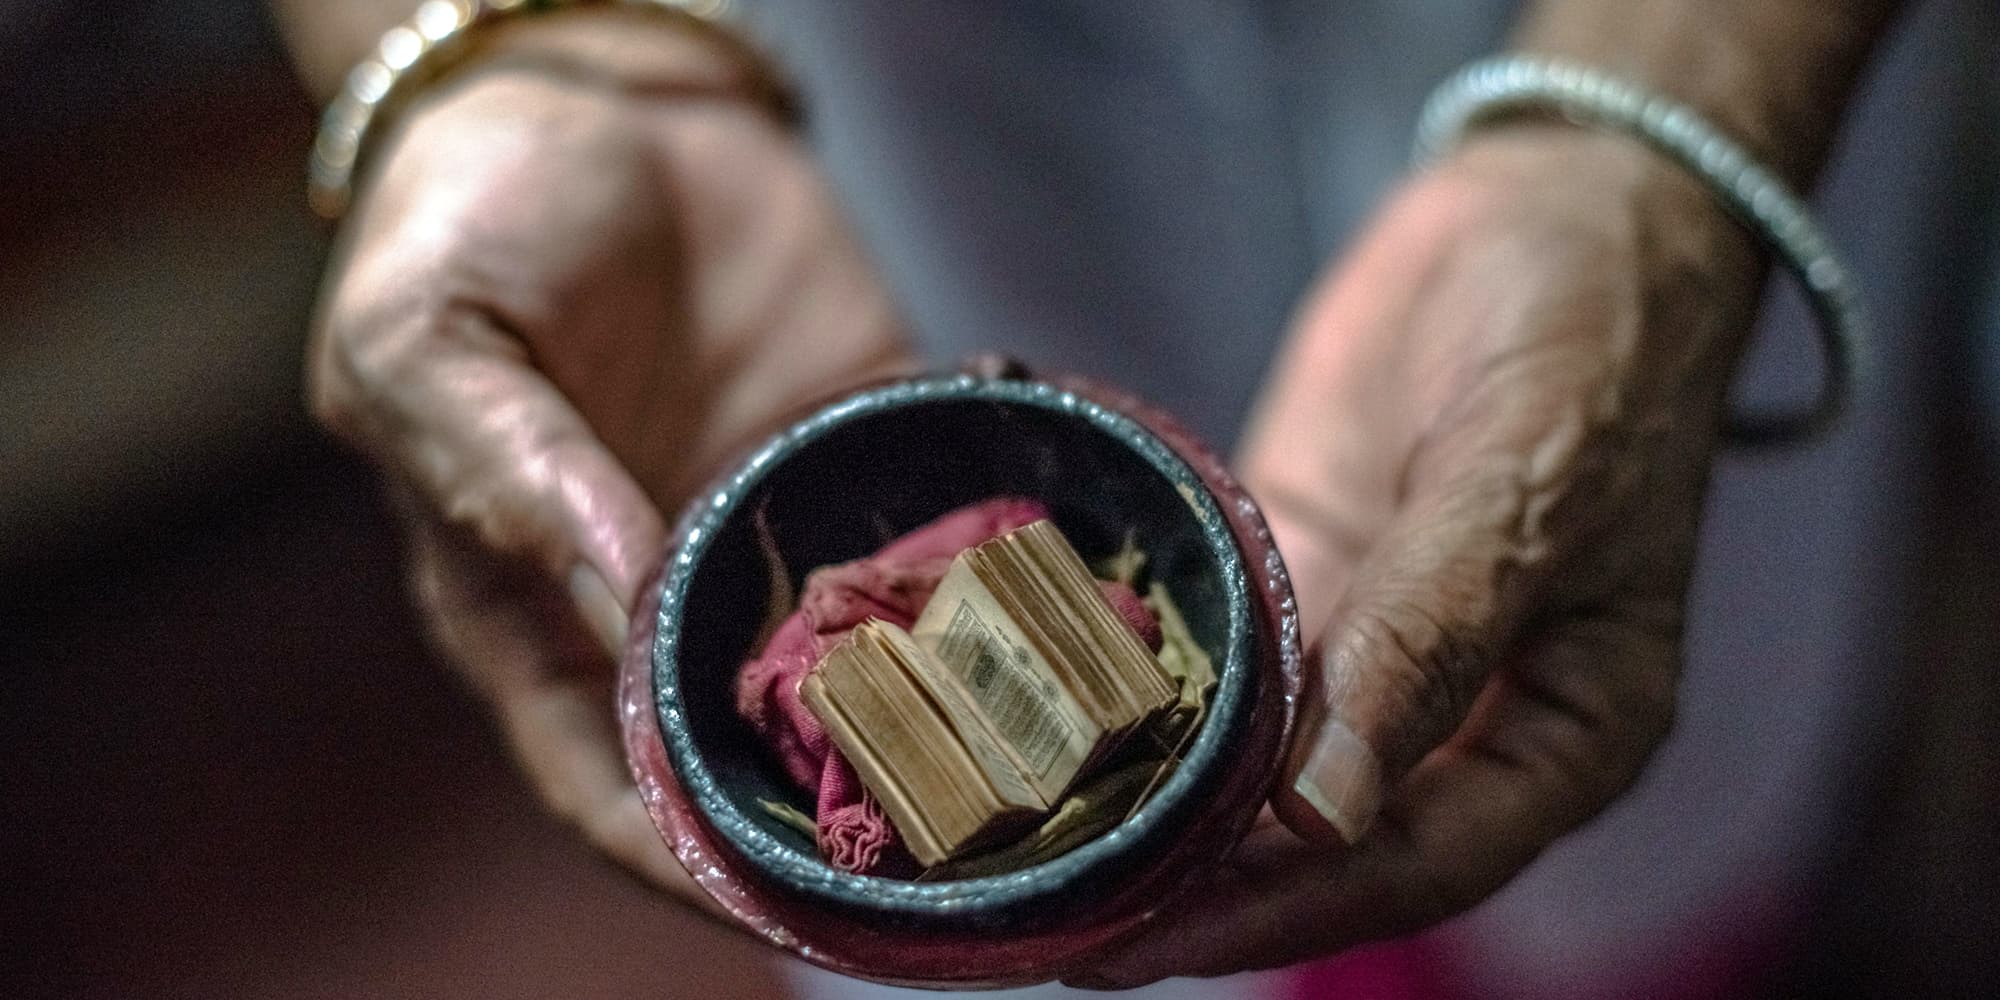 Shah Jahan Begum, 65, the wife of Indian Partition survivor Saleem Hasan Siddiqui, poses for a photograph with a miniature Koran his family saved during Partition. — AFP